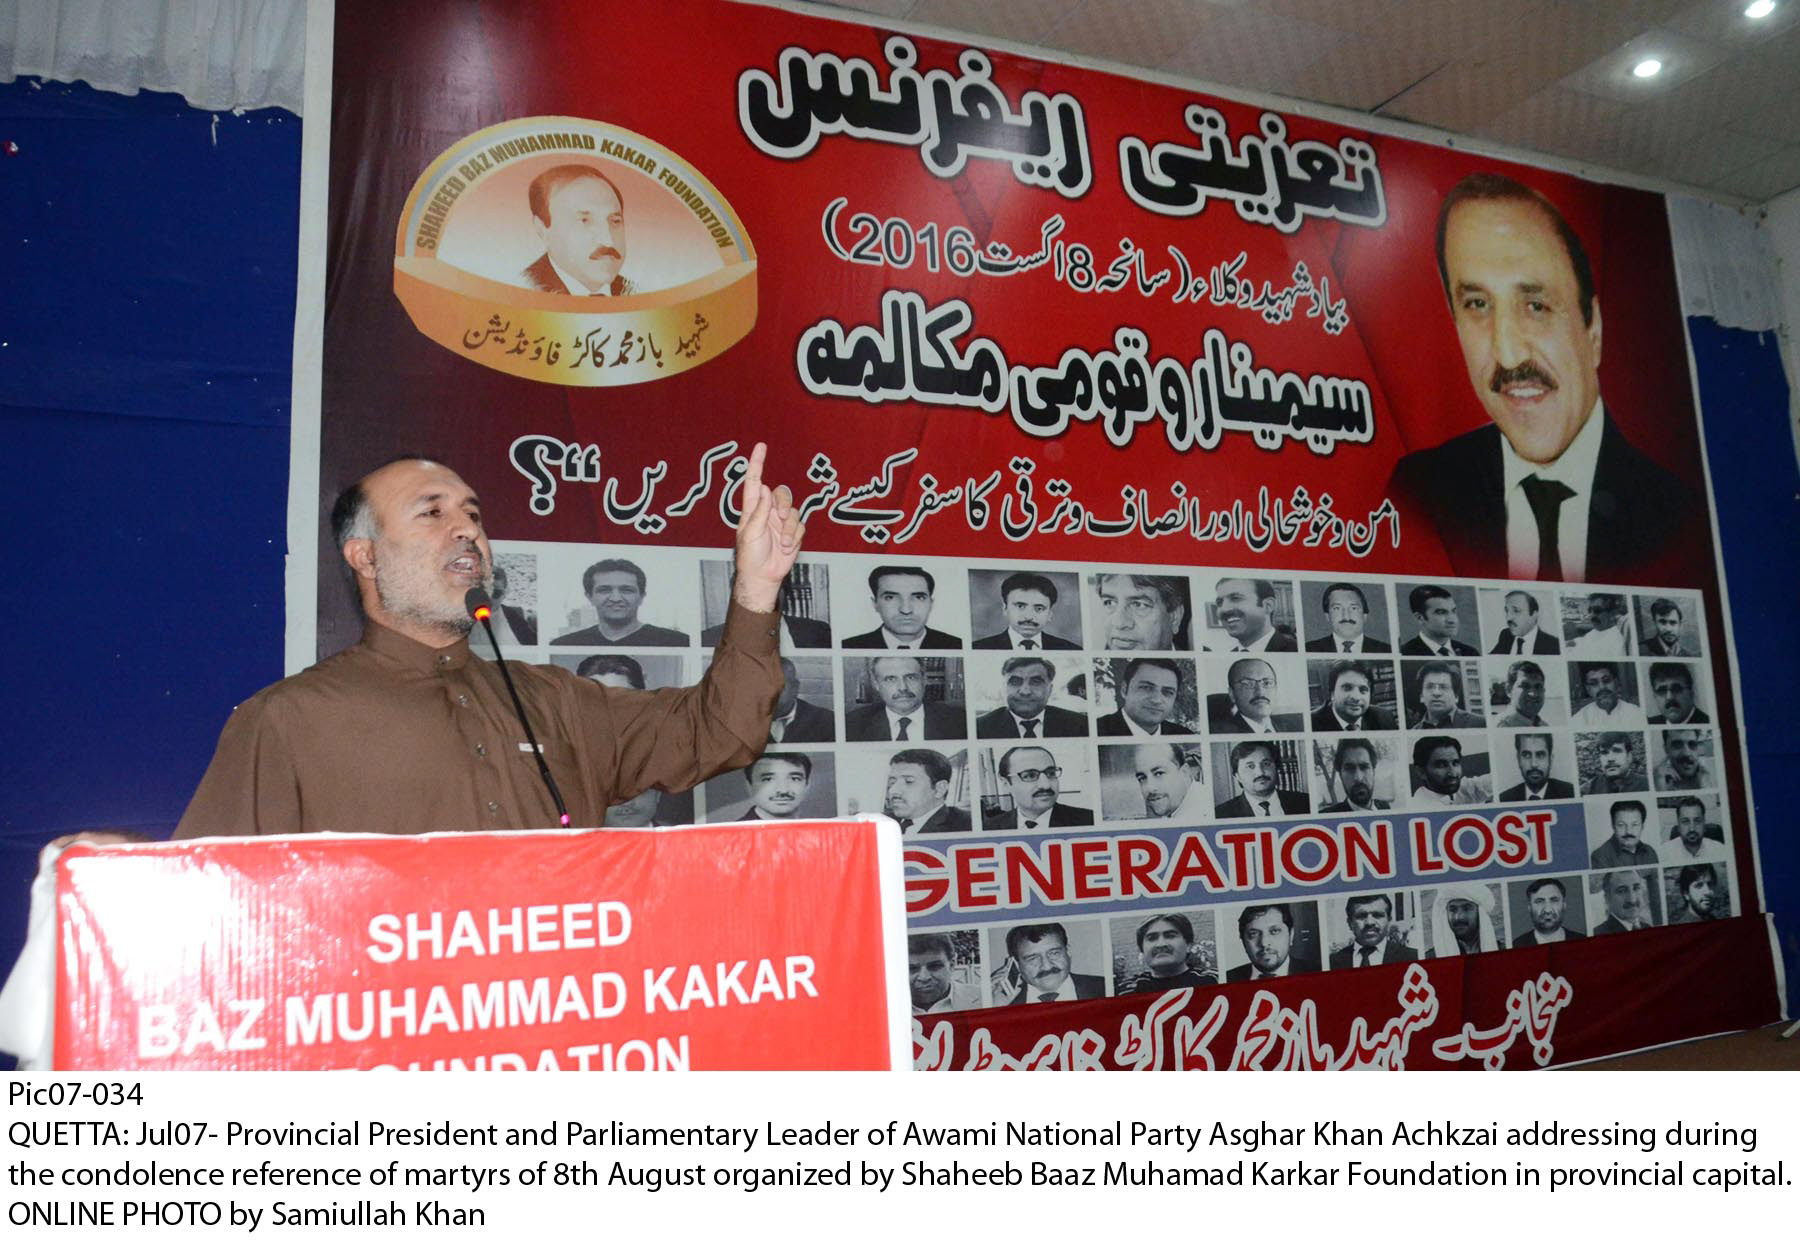 Provincial President of Awami National Party Asghar Khan Achakzai addresses a condolence reference organised by Shaheed Baaz Muhammad Karkar Foundation in Quetta PHOTO: ONLINE